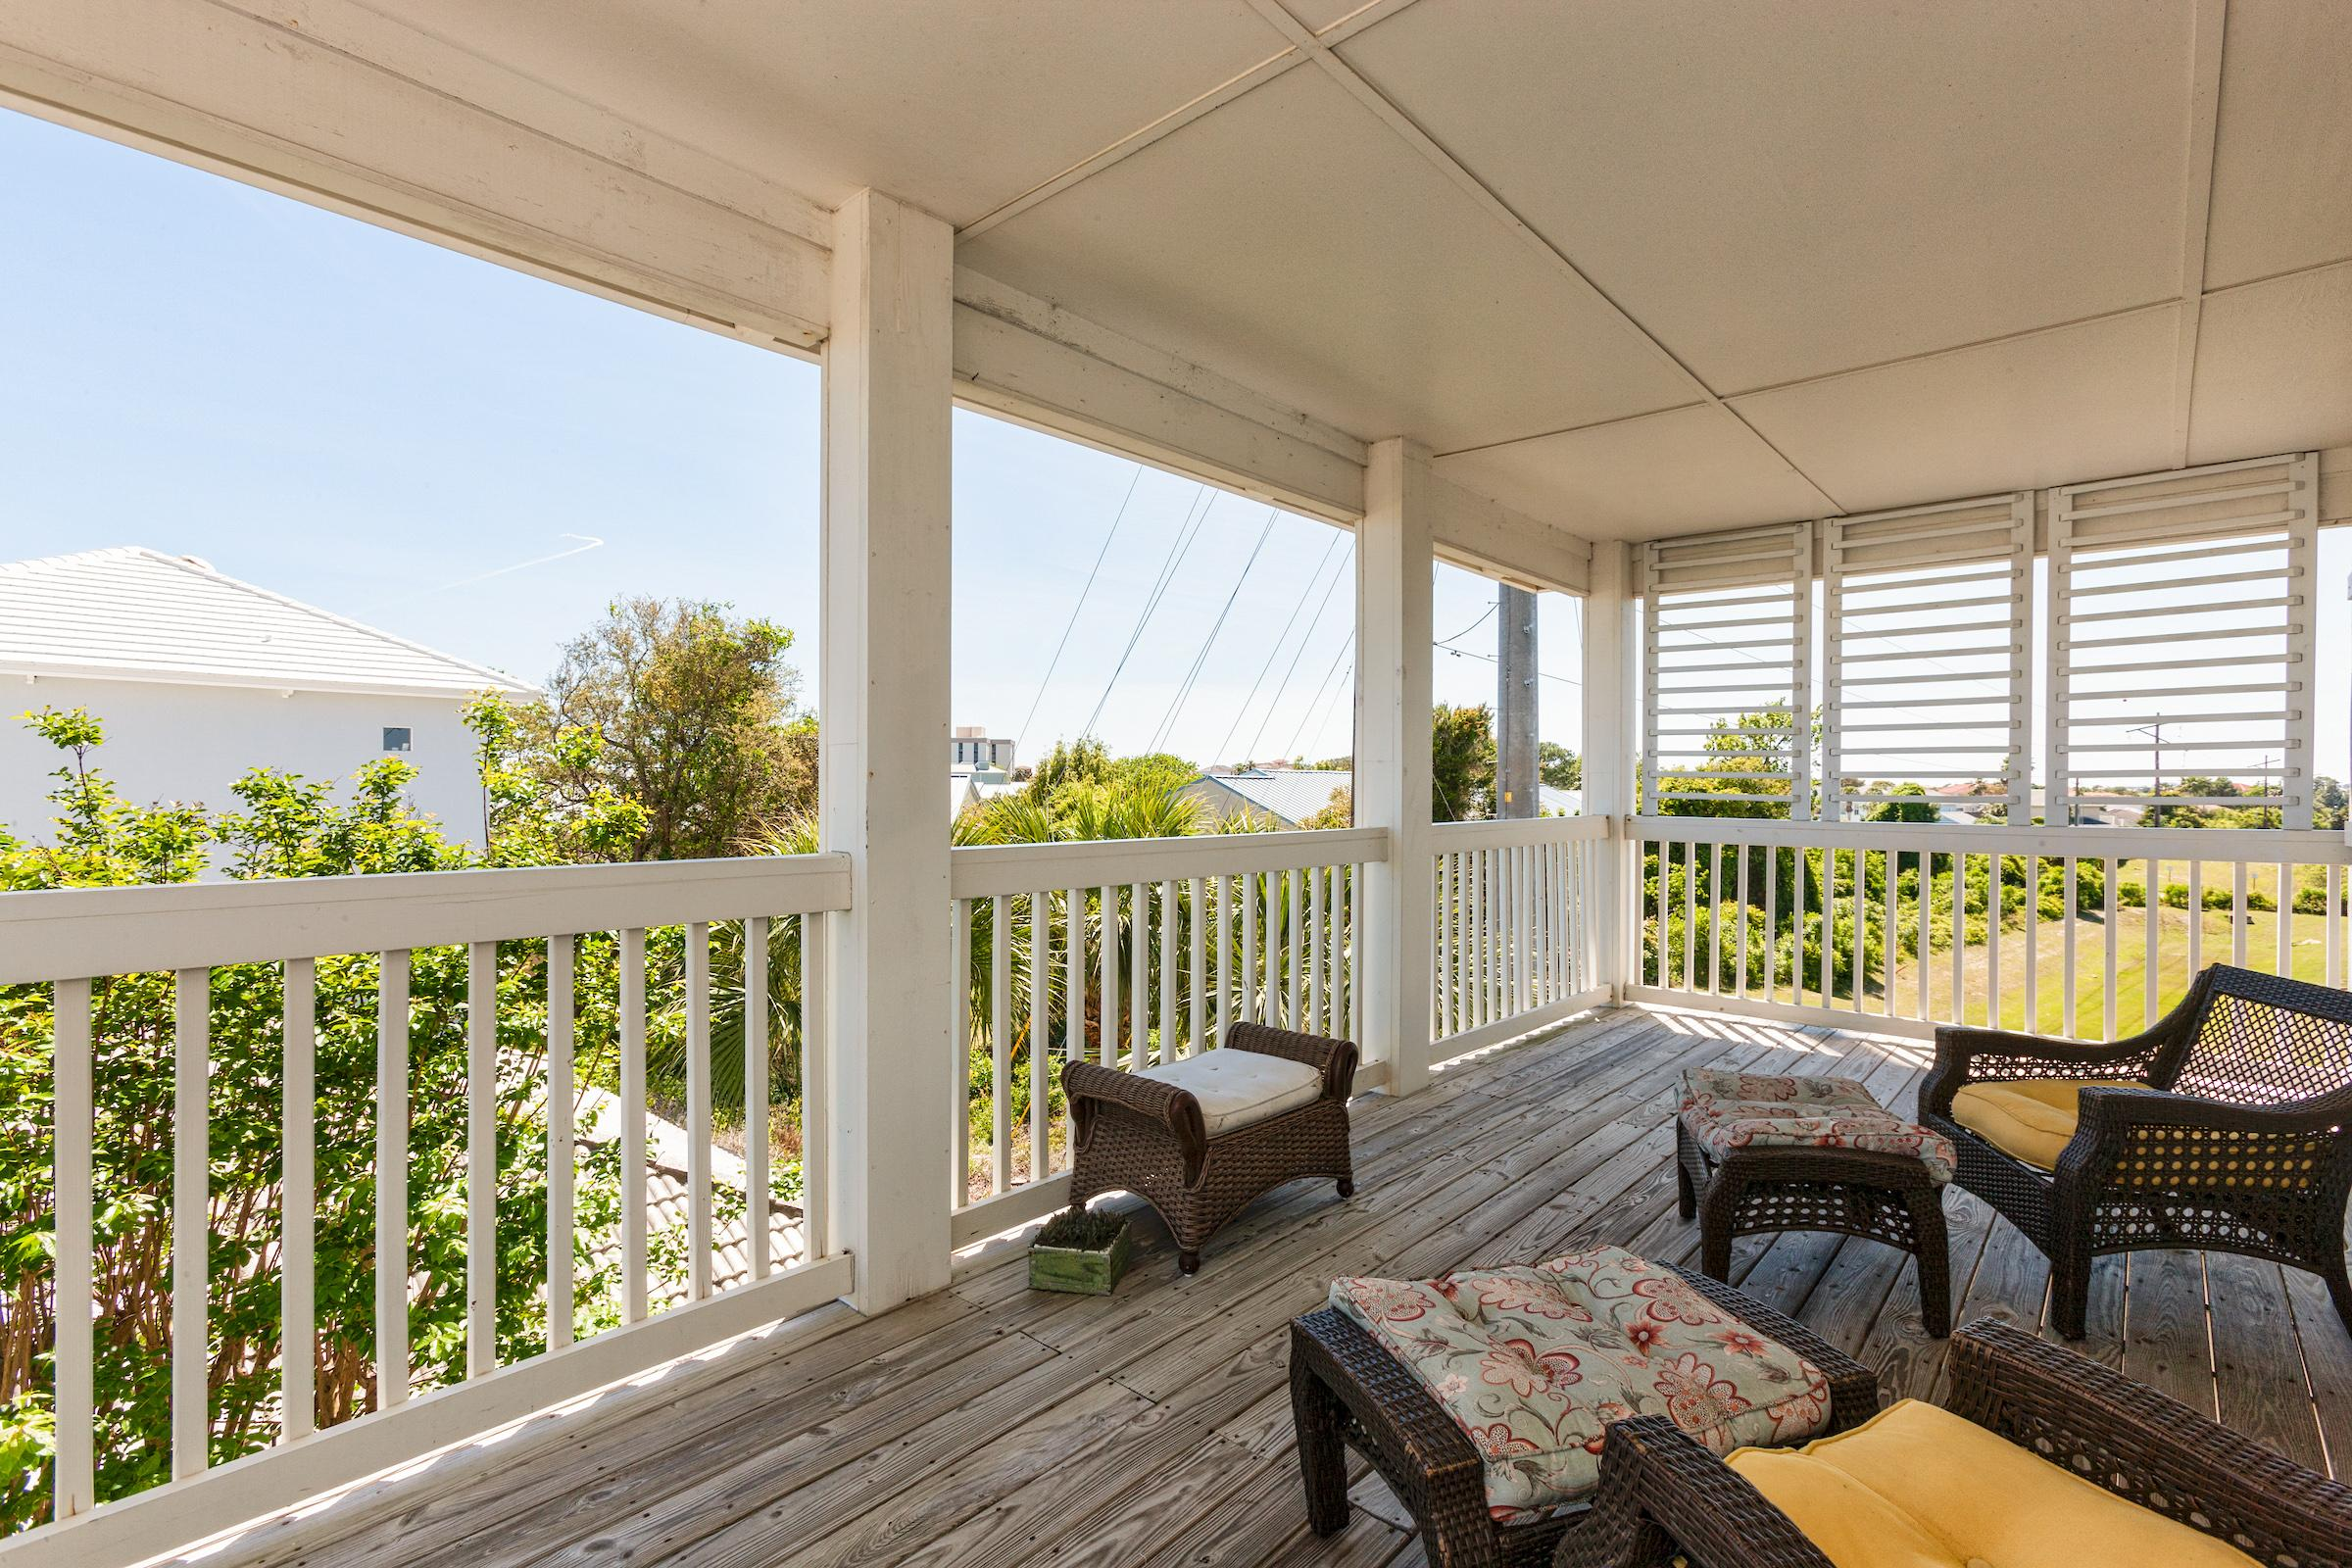 New Listing! Coastal Getaway 700 Yards to Beach